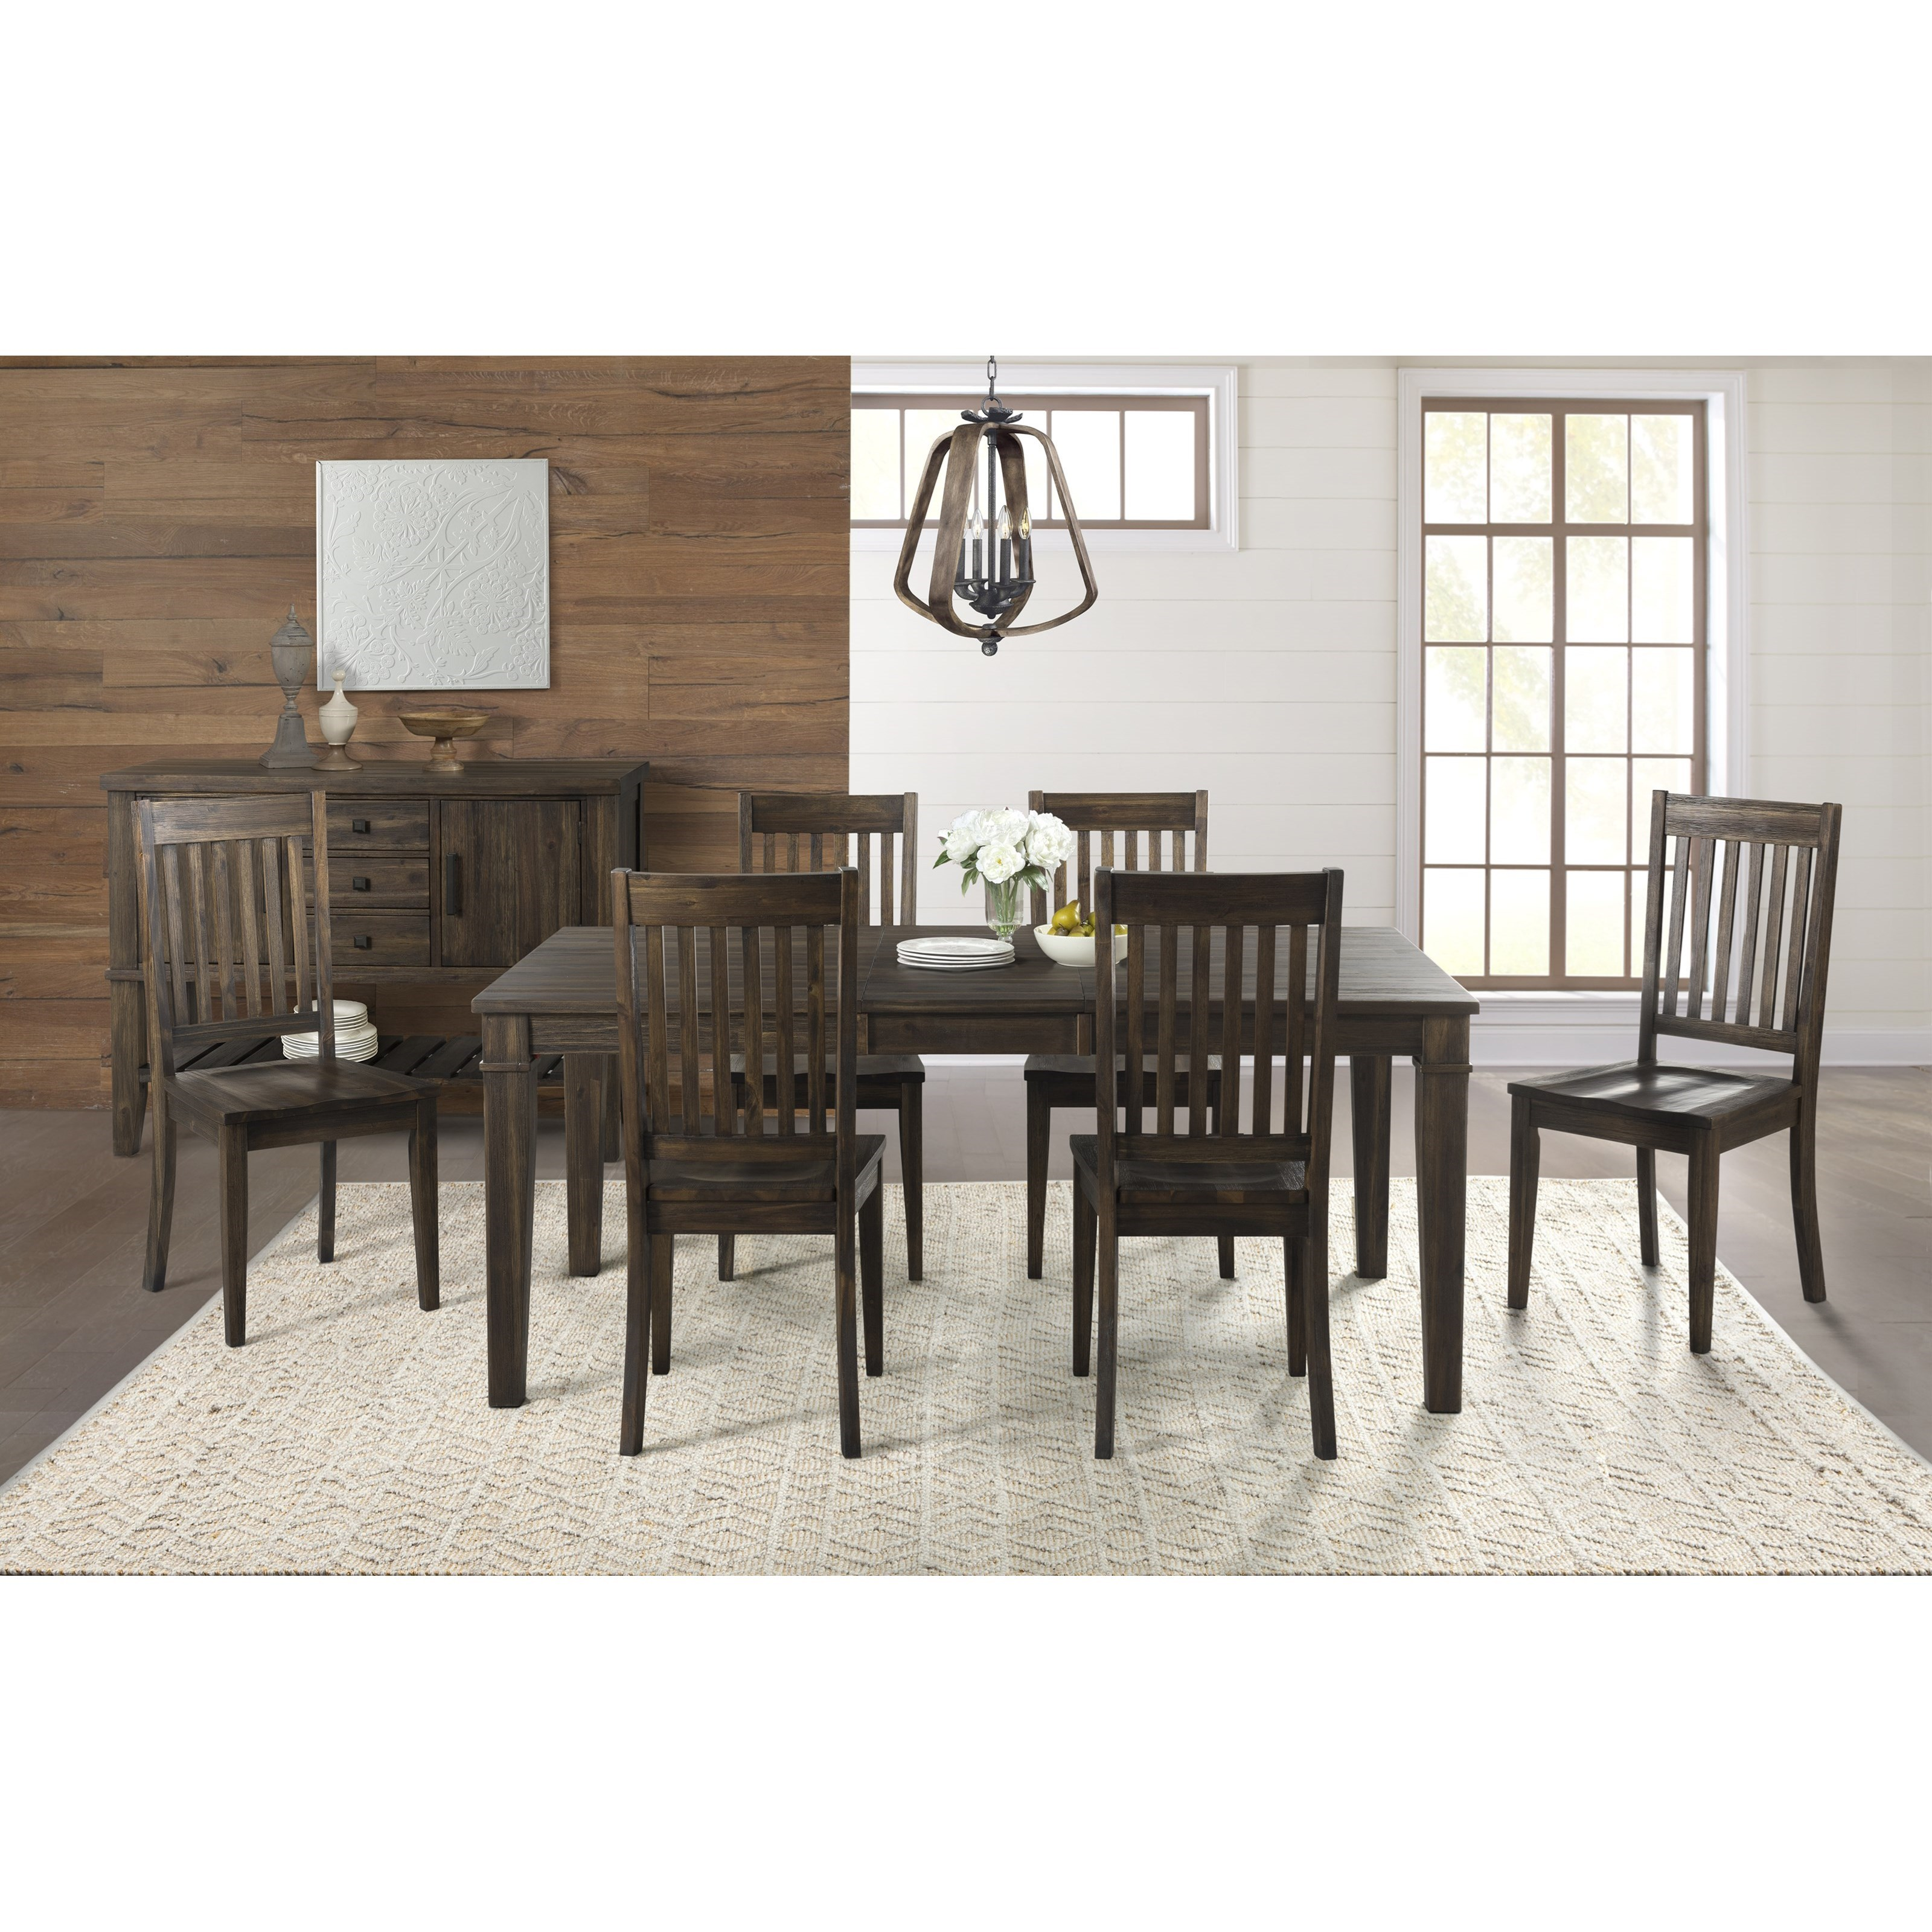 Huron Formal Dining Room Group by AAmerica at Suburban Furniture